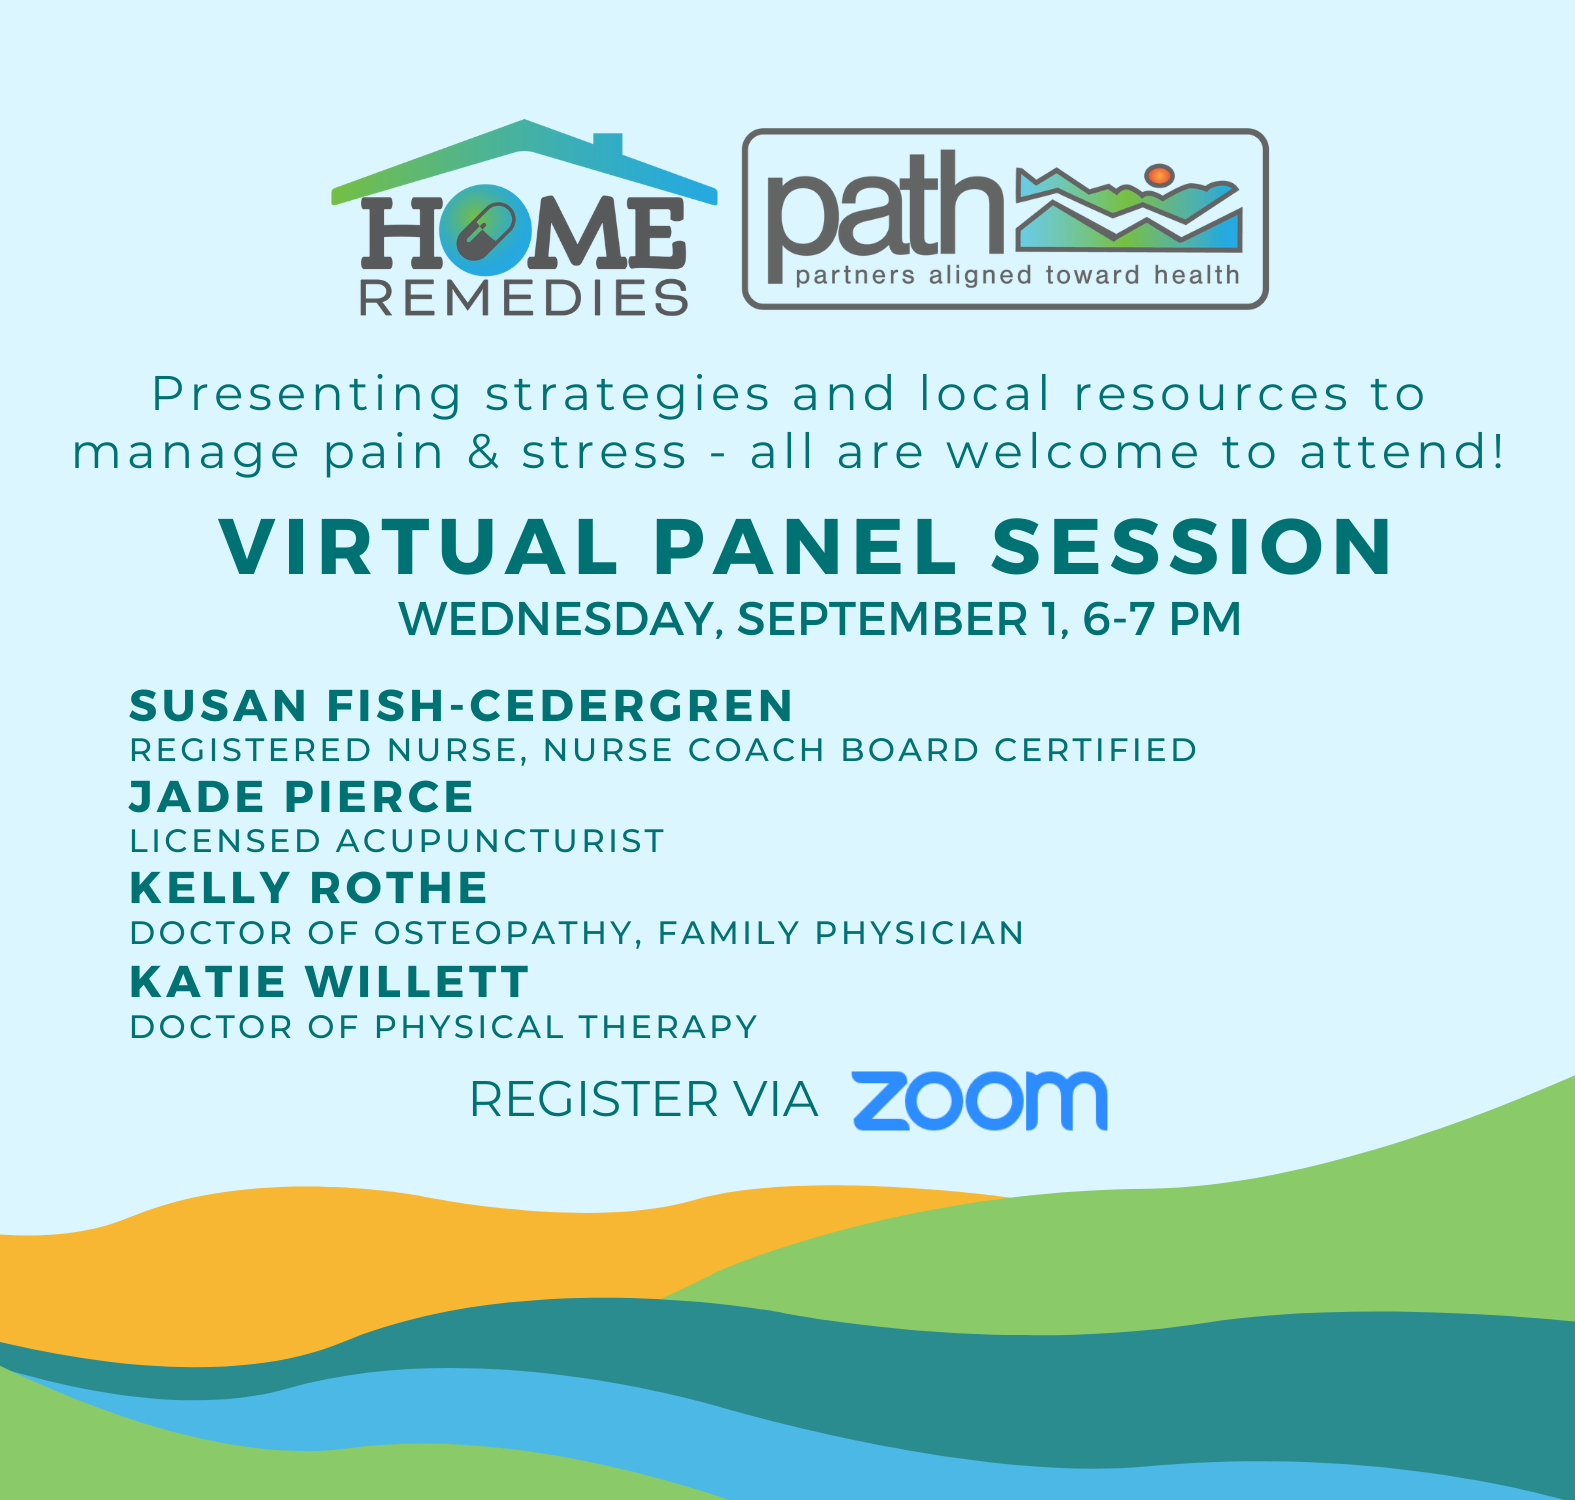 Home Remedies Virtual Panel Session: a digital resource with local roots!  Sign up today for the session on Sept 1, 6-7pm